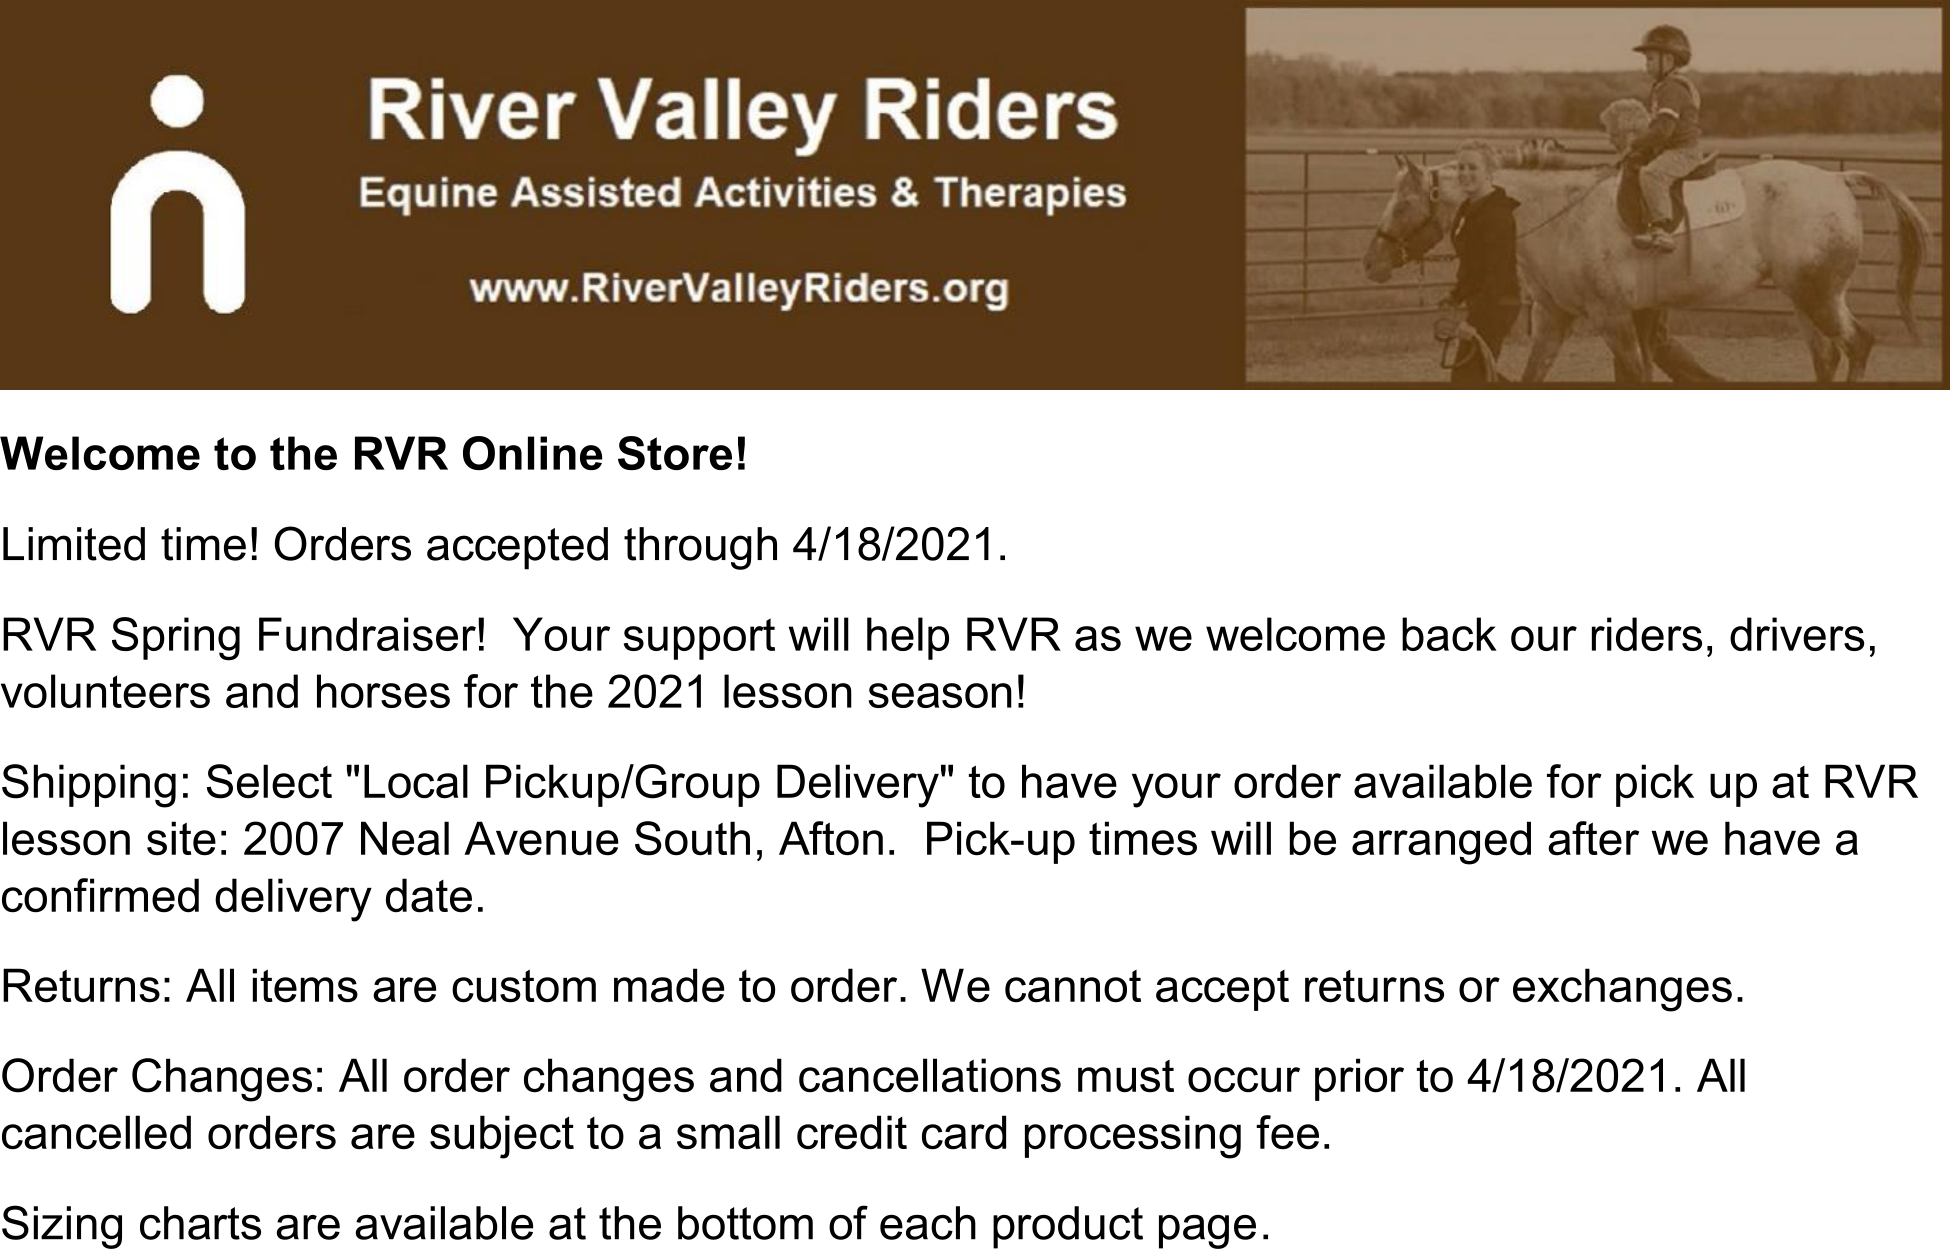 river-valley-riders-online-store-002-.png